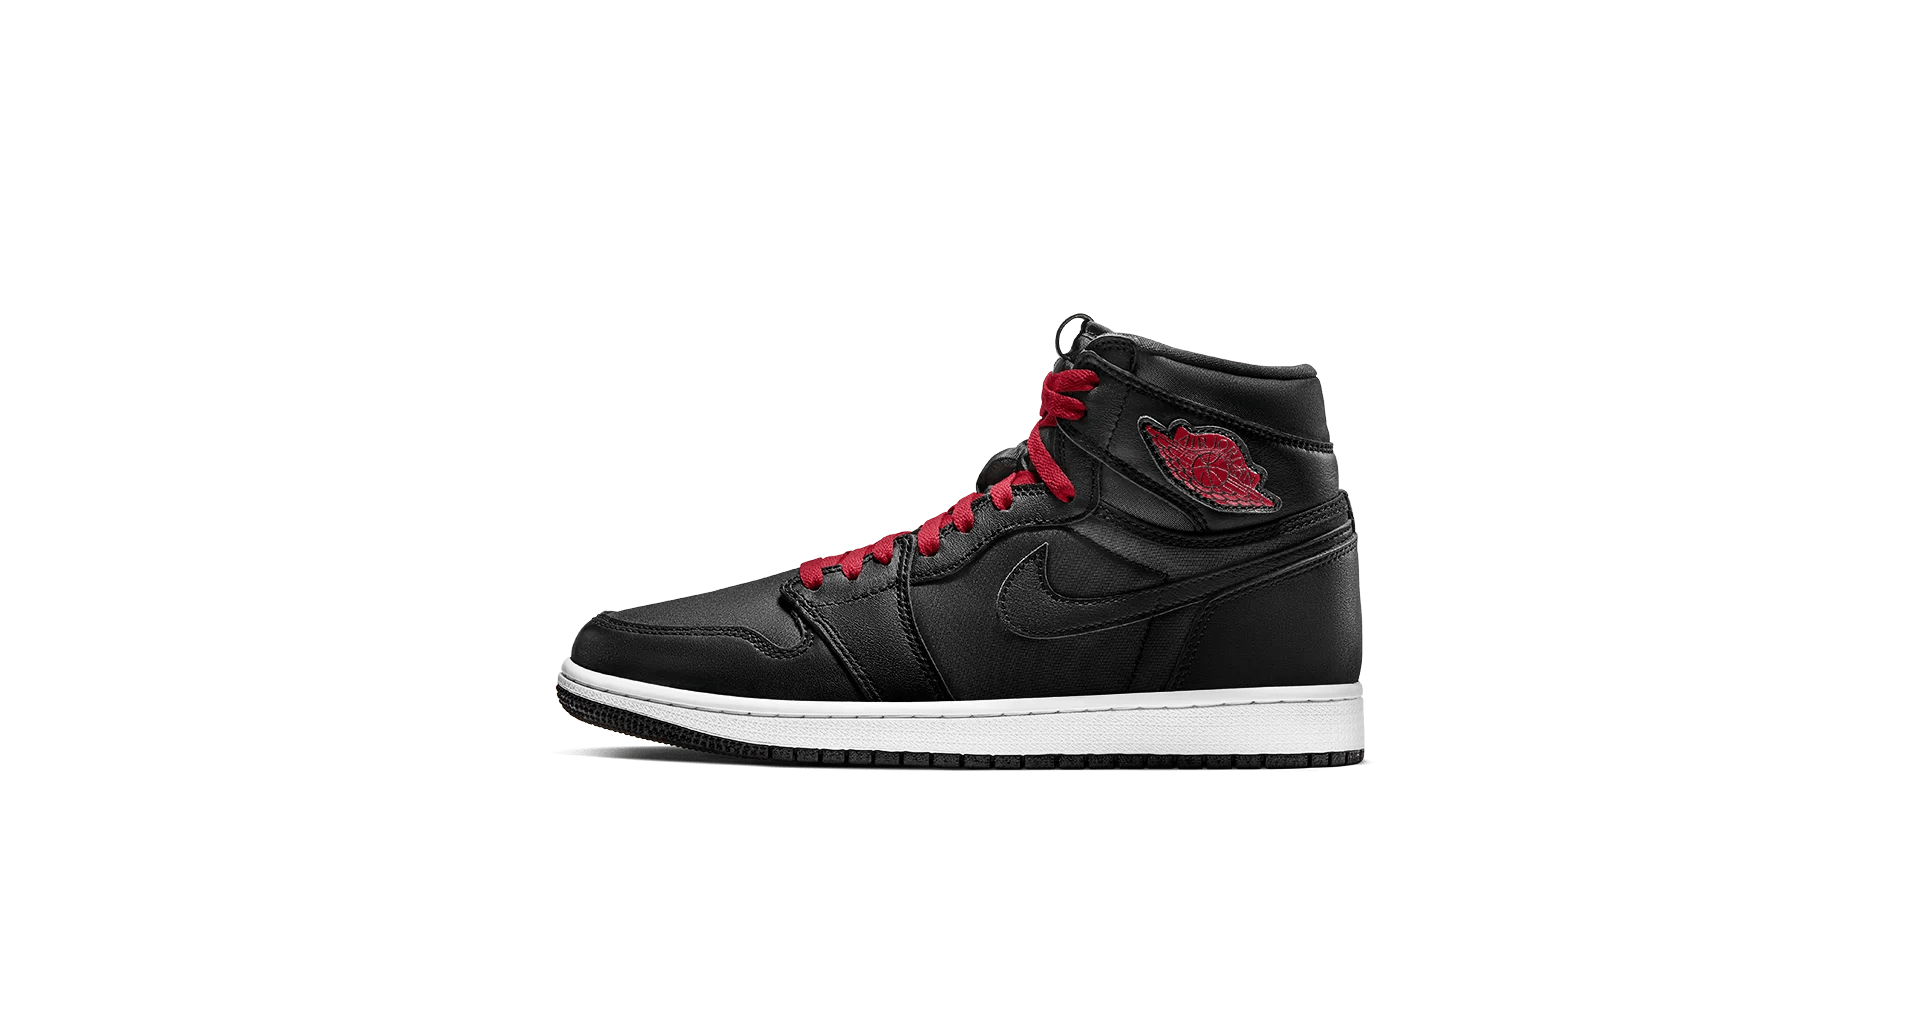 Red 1.com Air Jordan 1 High Black Gym Red Release Date Nike Sneakrs Sg